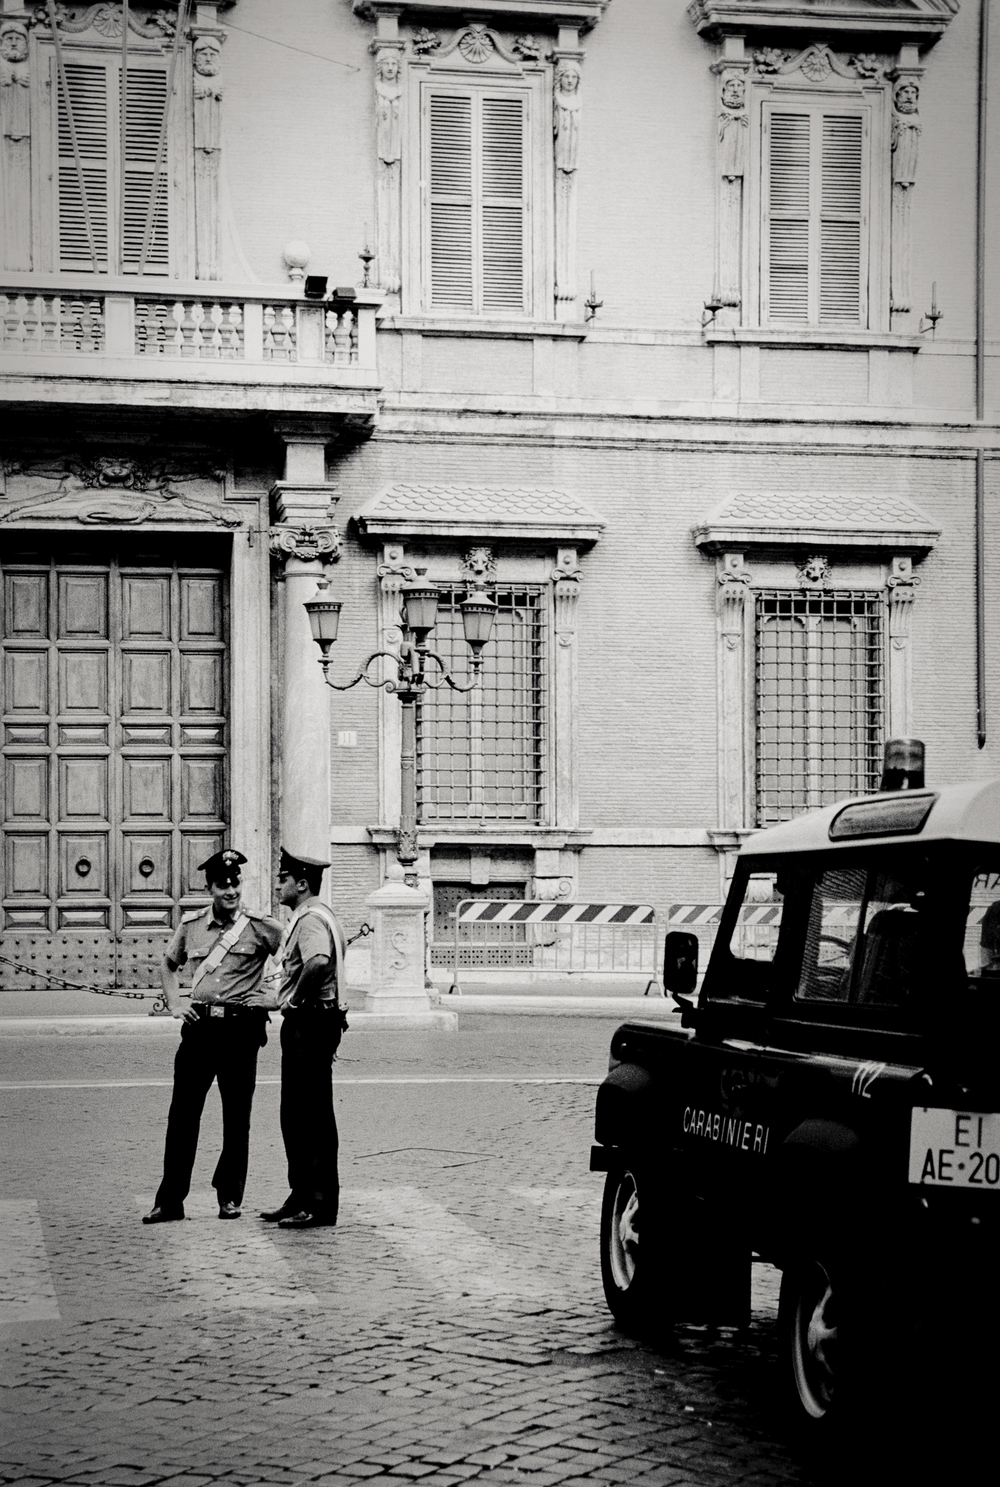 2 cops, Florence, Italy 2001.